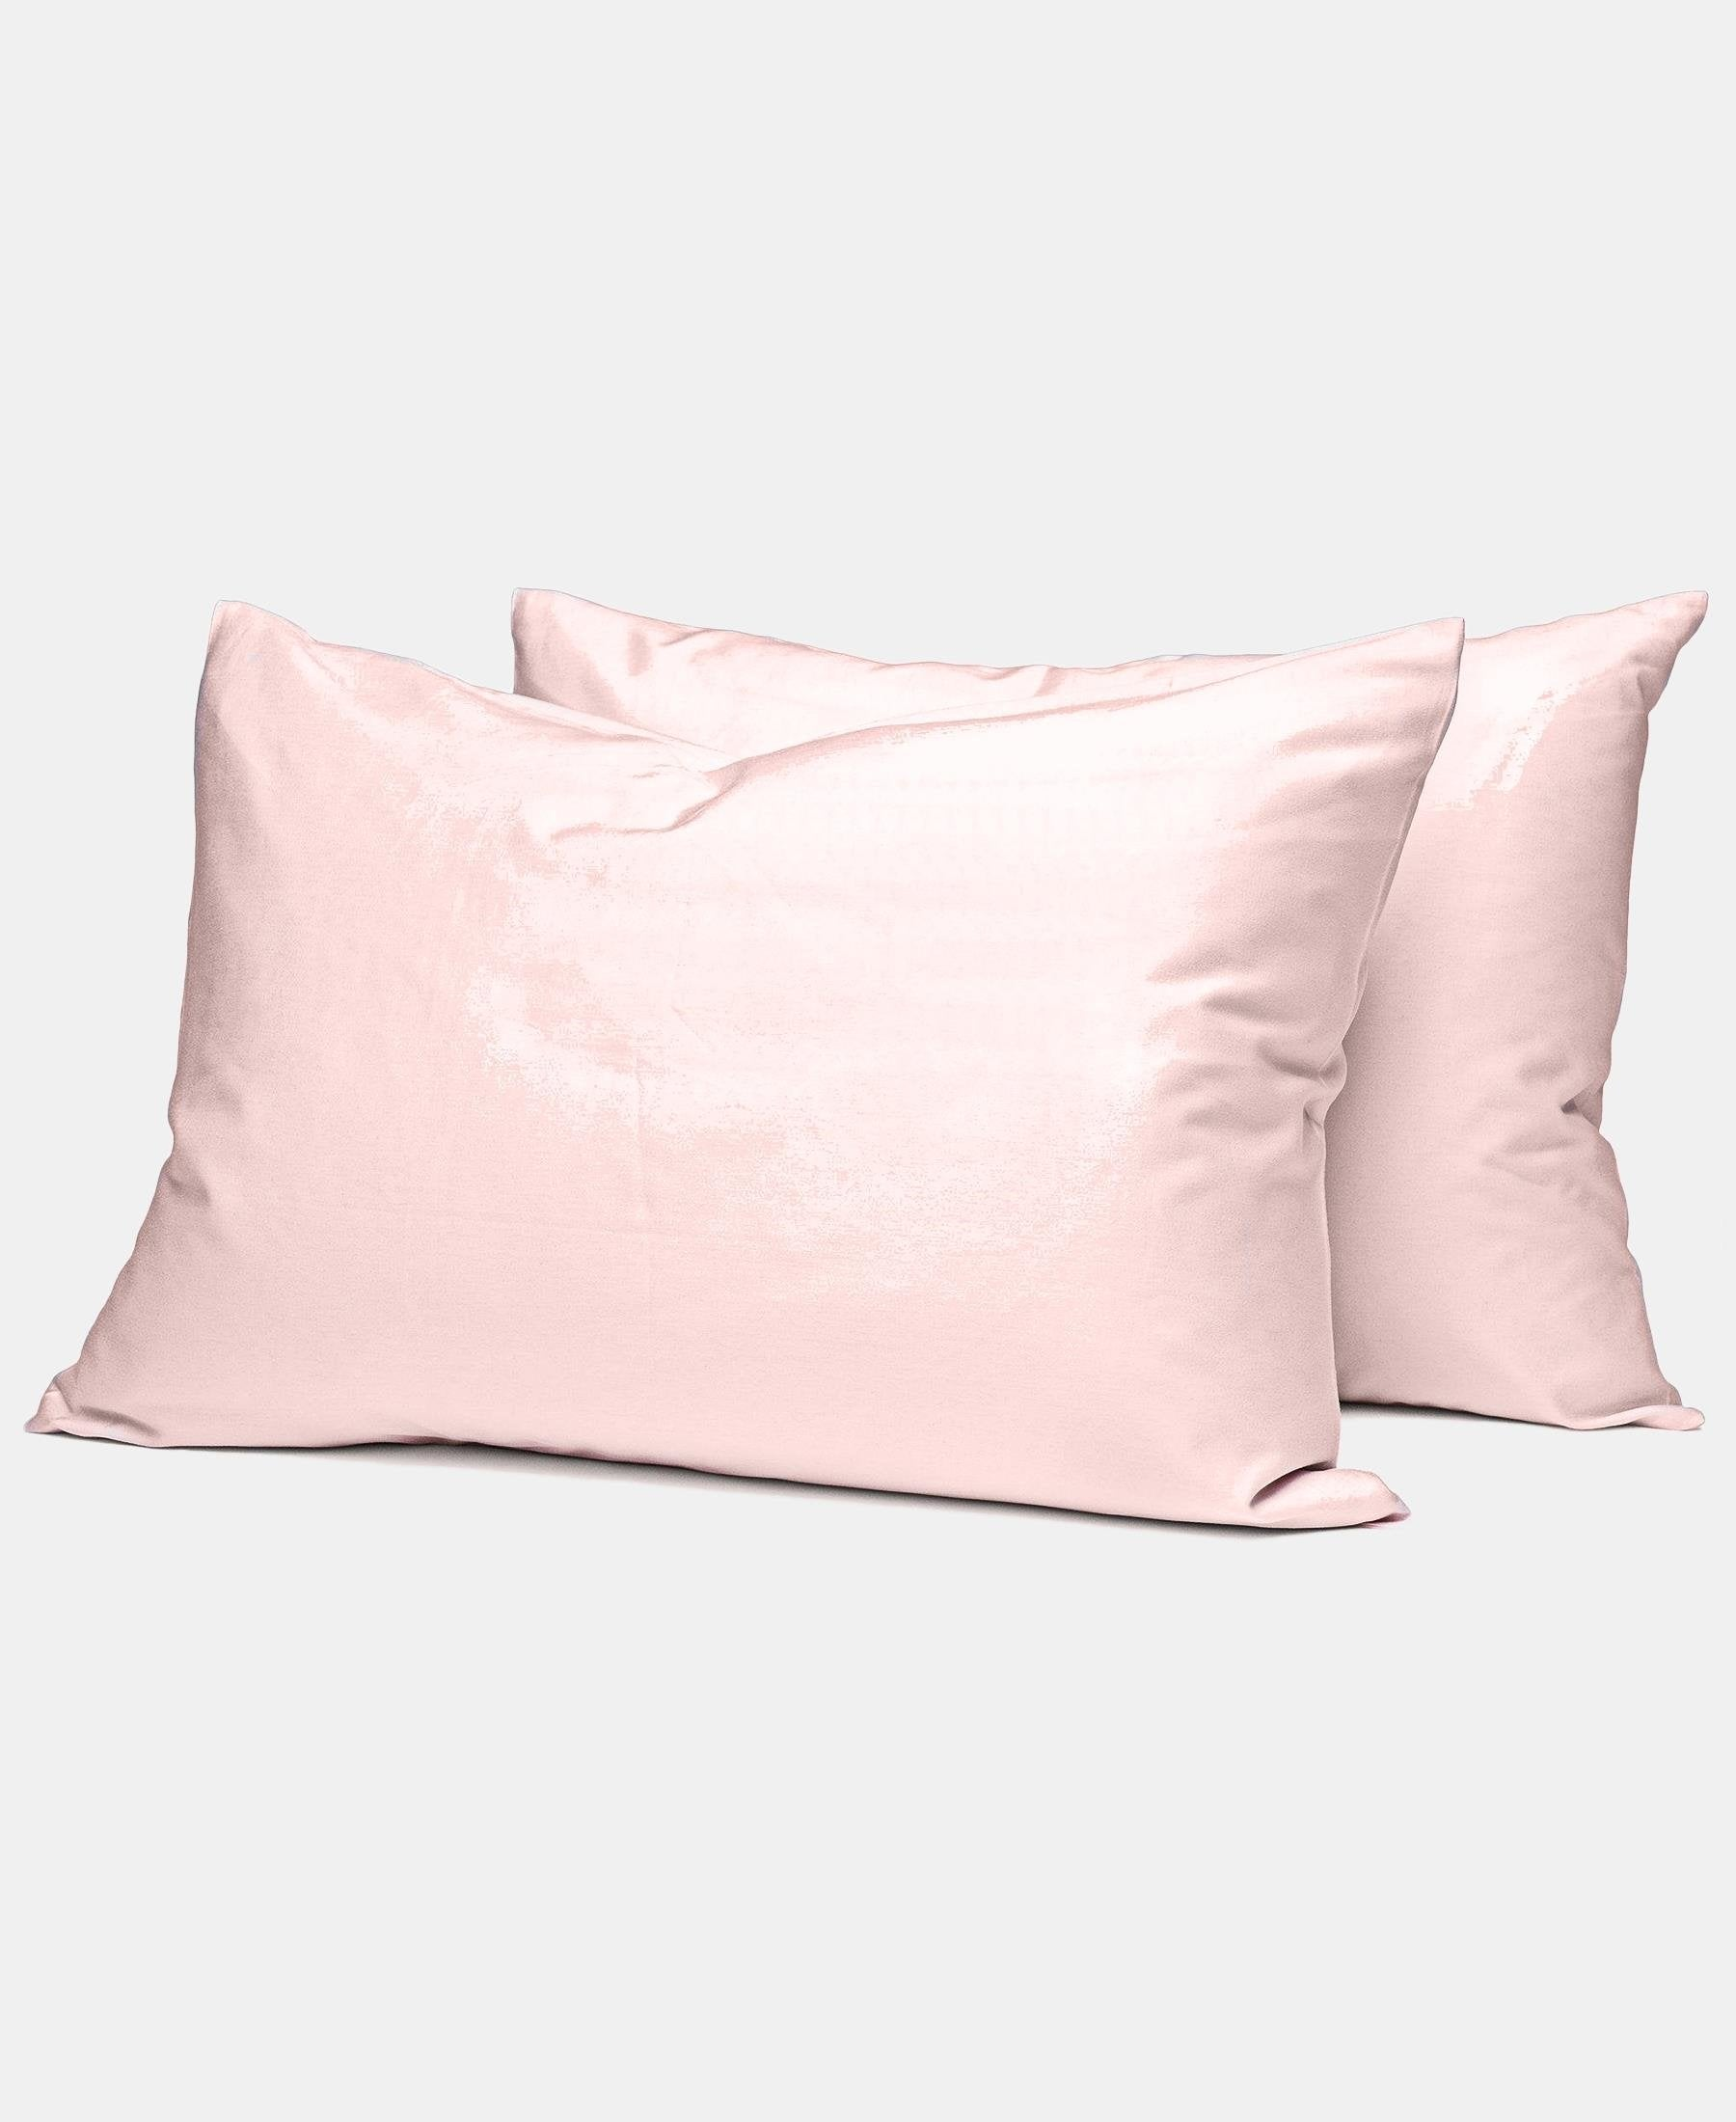 2 Pack 180 Thread Count Horrockses King Size Pillowcases - Dusty Pink